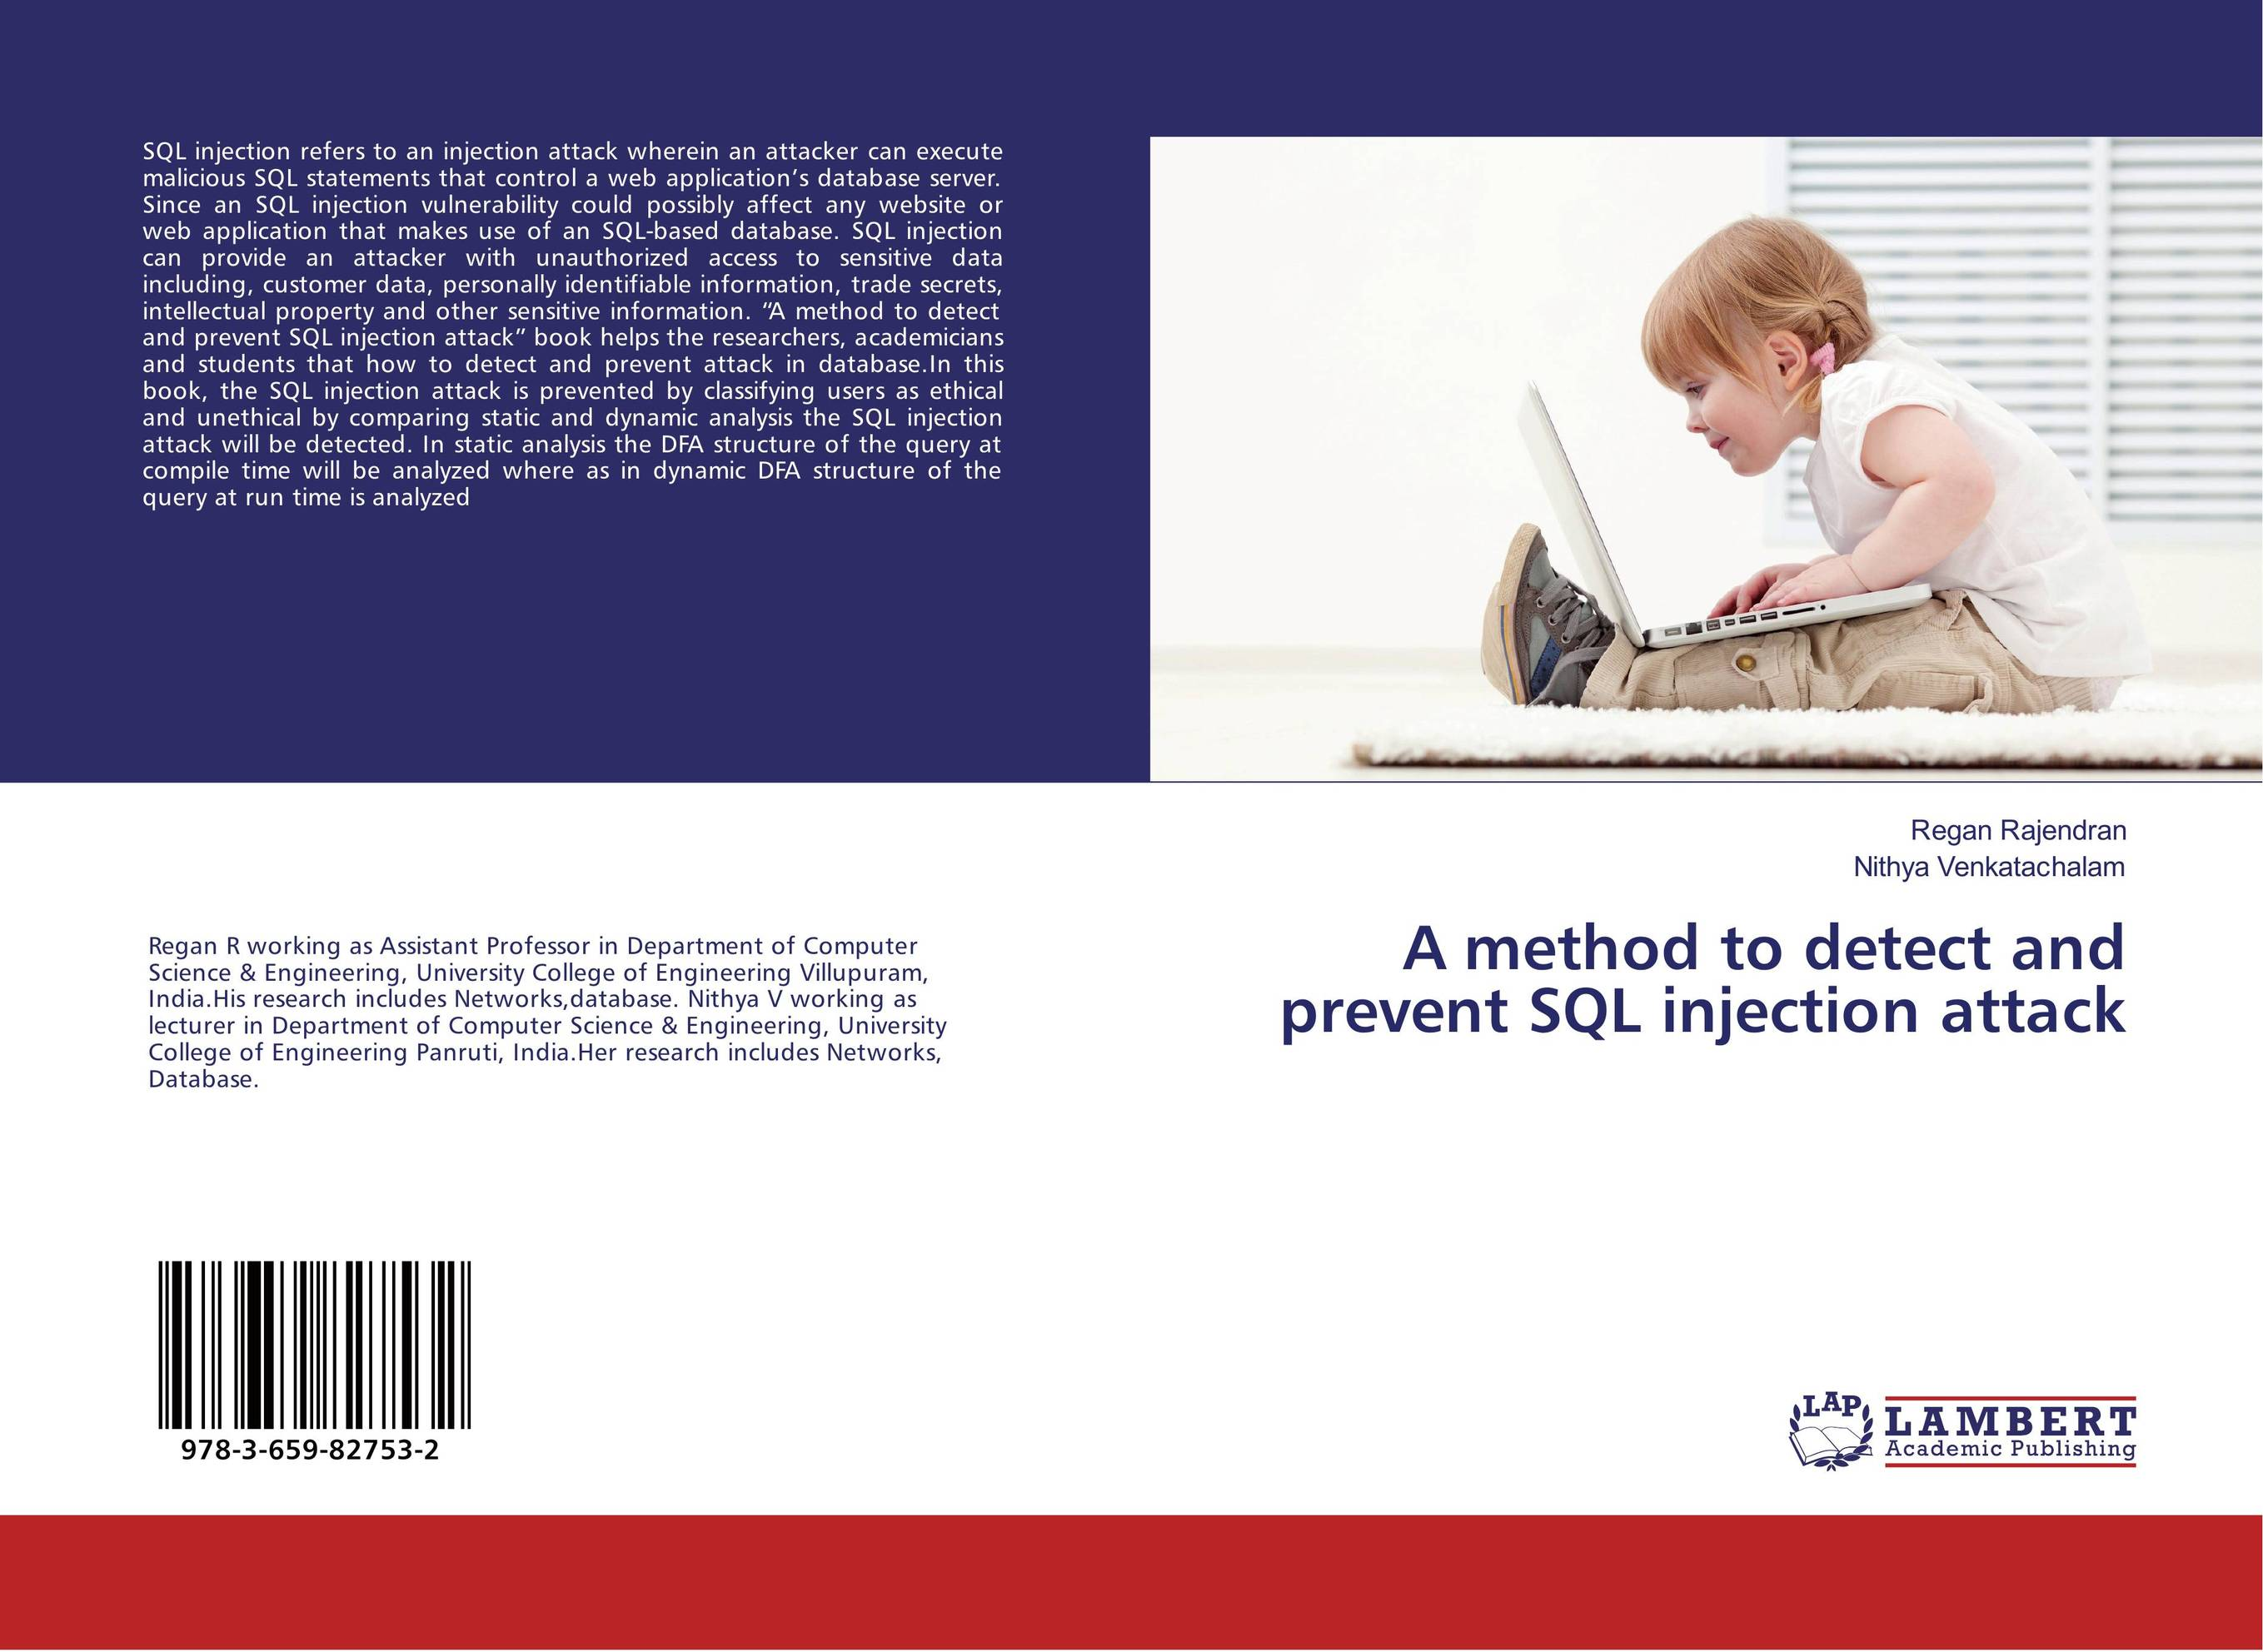 A method to detect and prevent SQL injection attack oracie sql